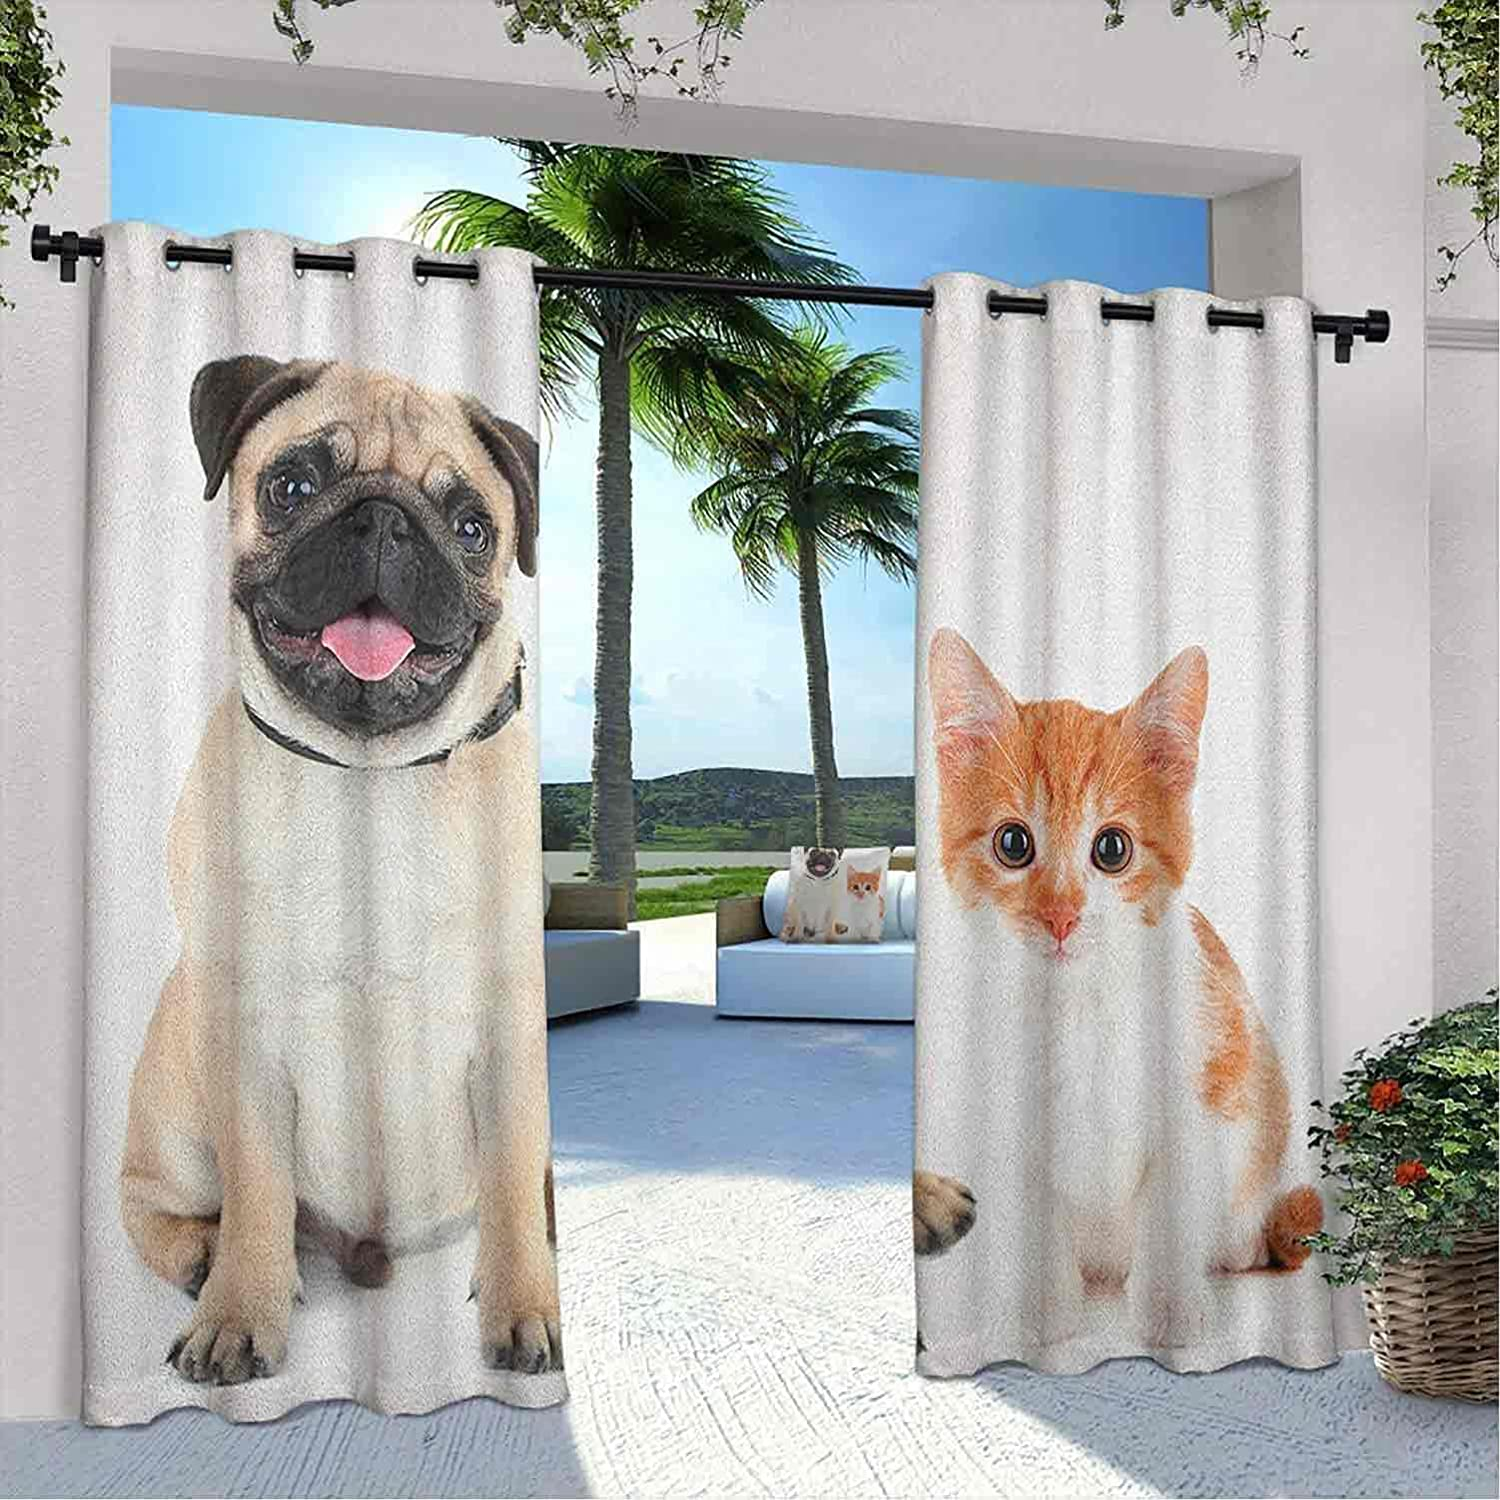 Printed Outdoor Special Campaign Max 68% OFF Pug Curtain Adorable and Kitten Photograp Puppy